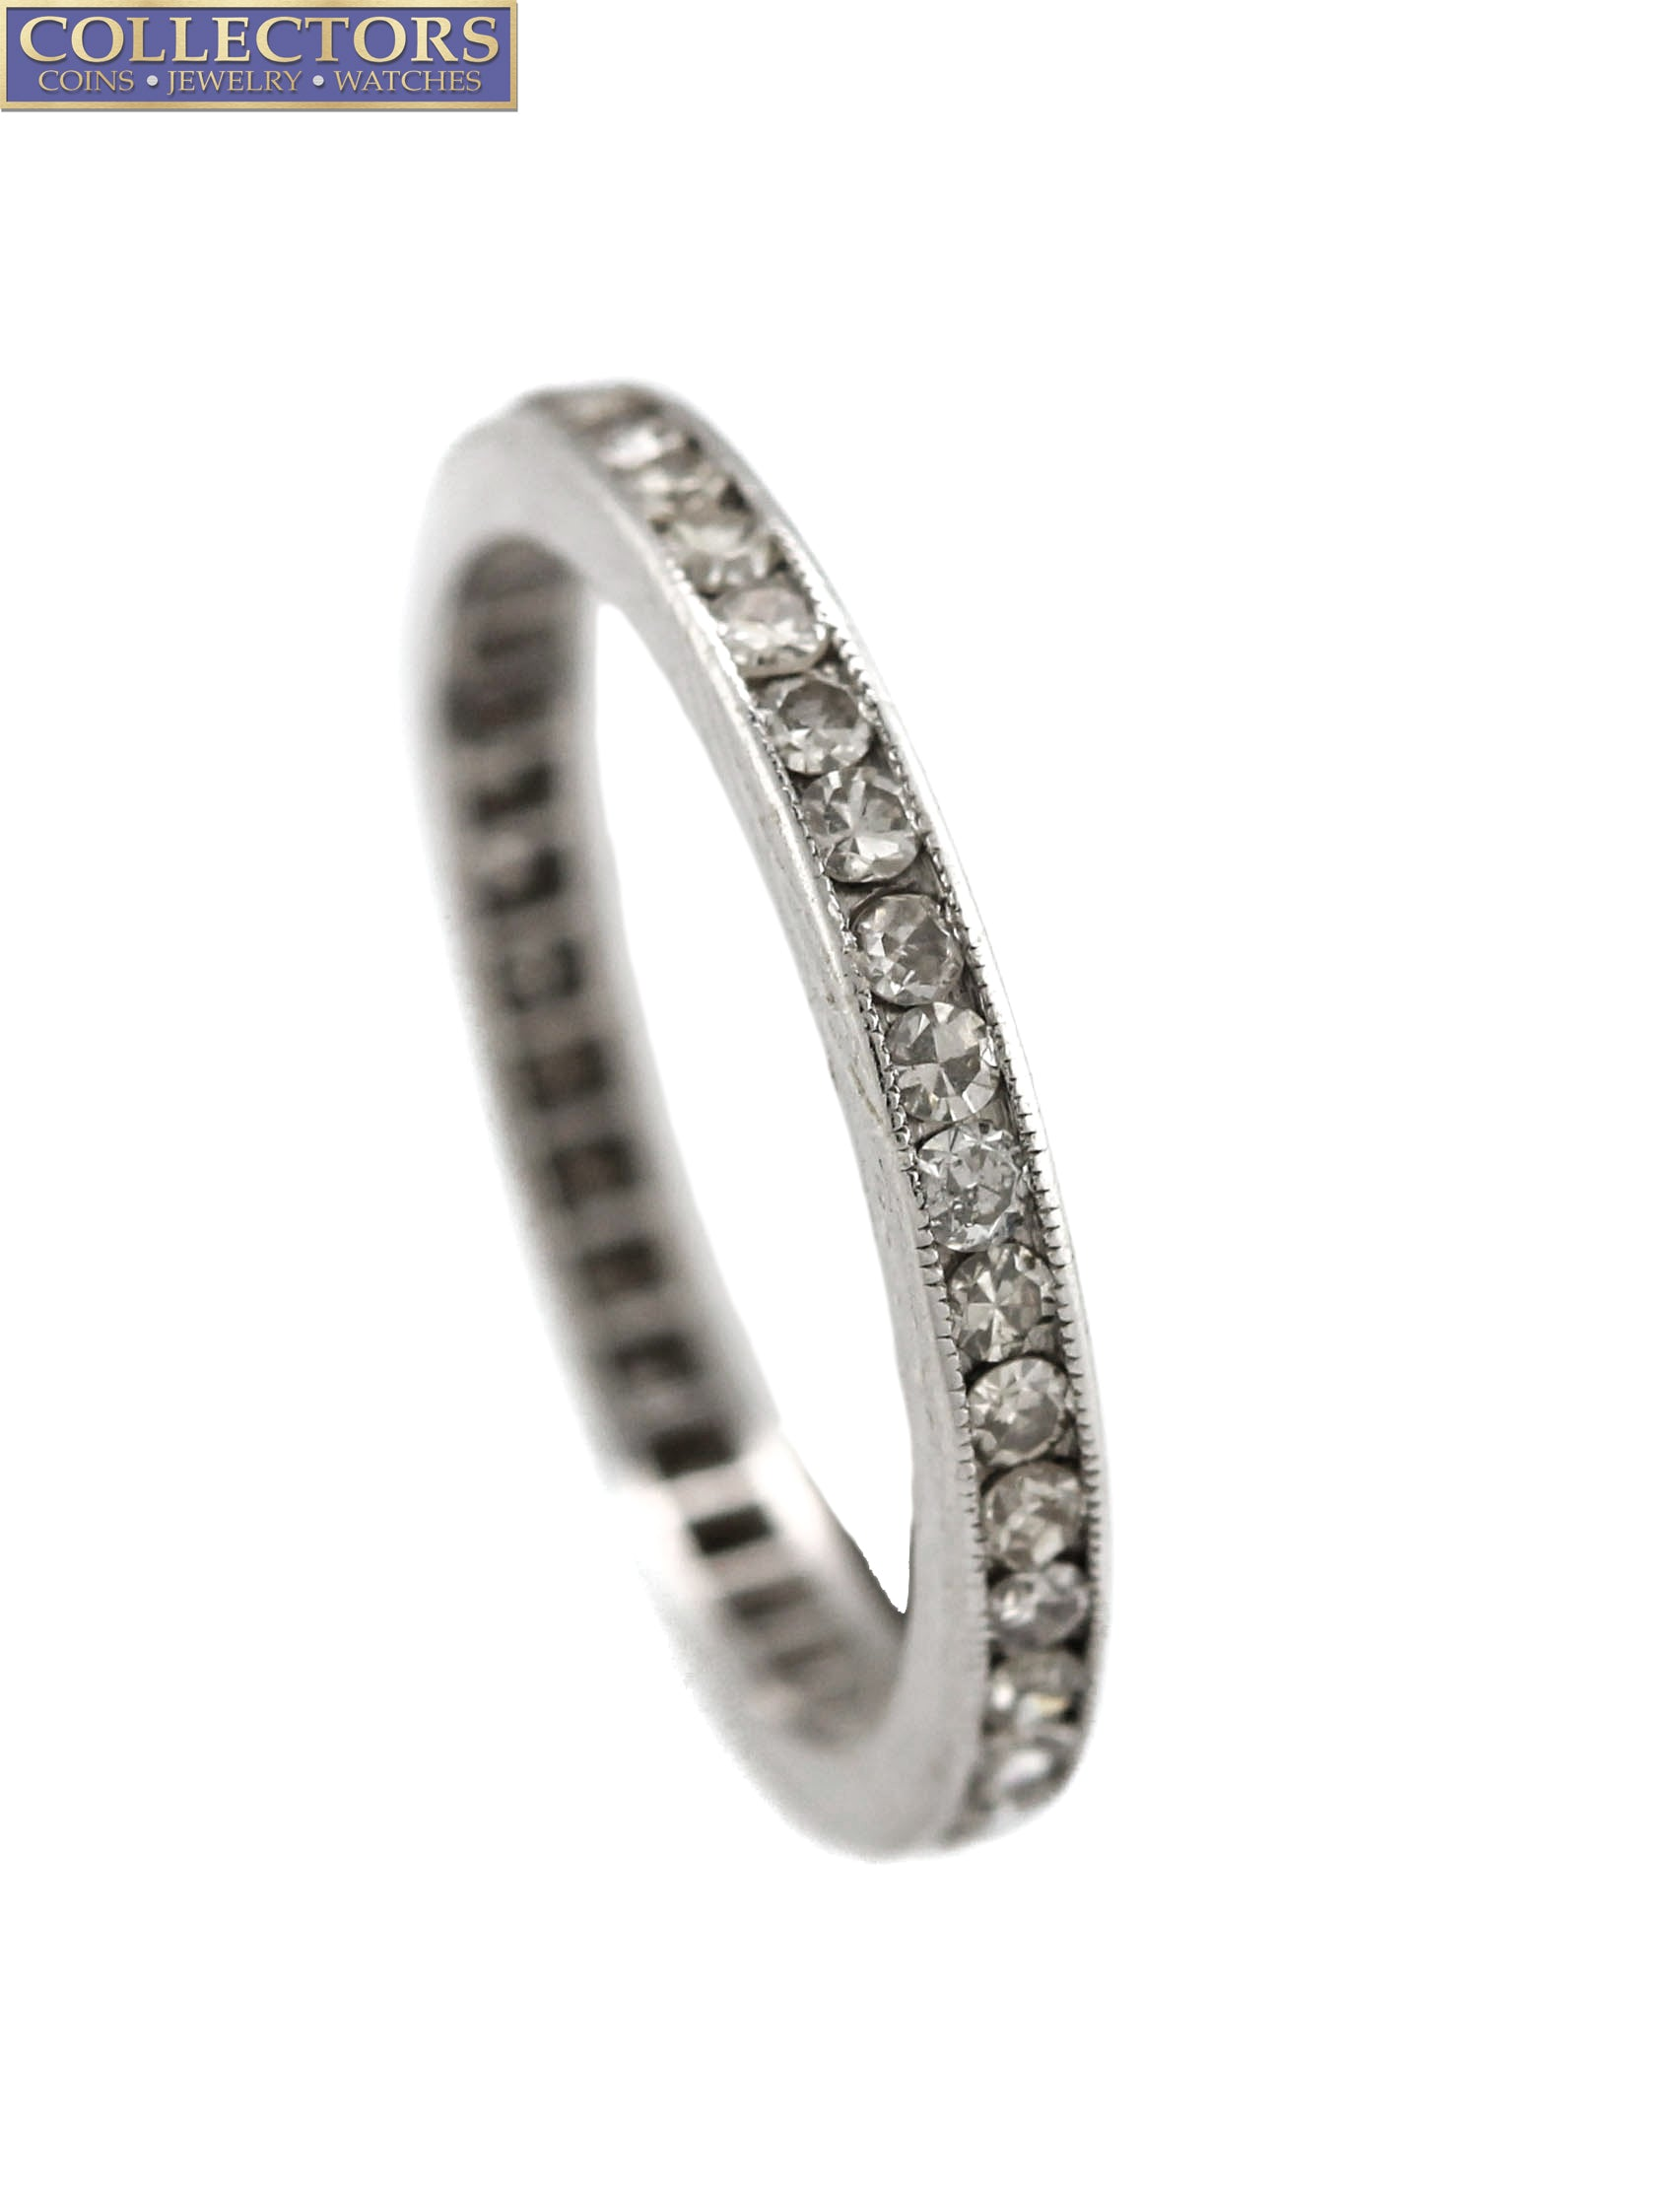 Ladies Estate 14K White Gold 0.76ctw Diamond Milgrain Eternity Wedding Band Ring